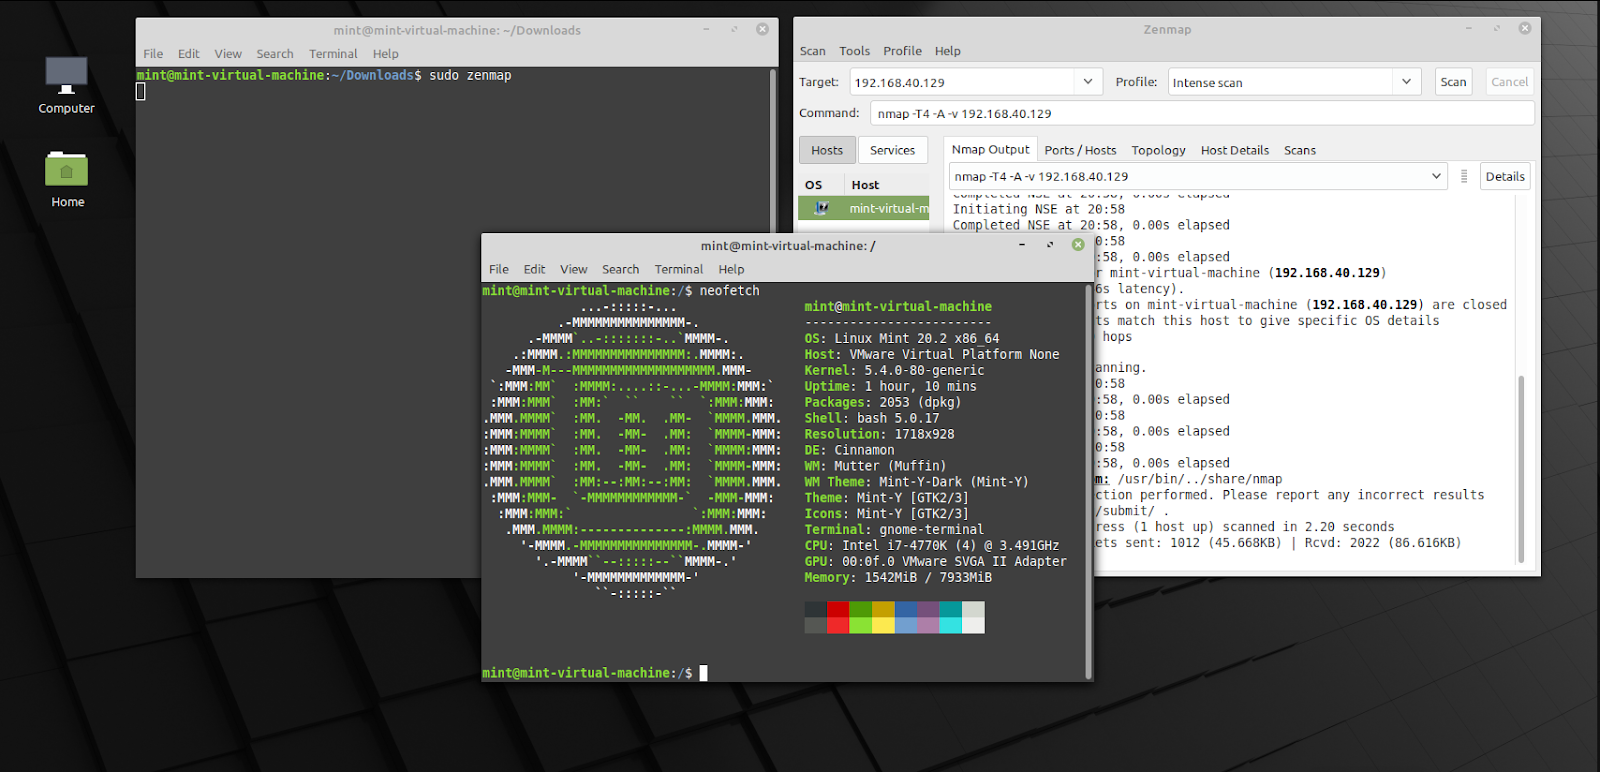 Install Zenmap in Linux Mint 20.x. Source: nudesystems.com